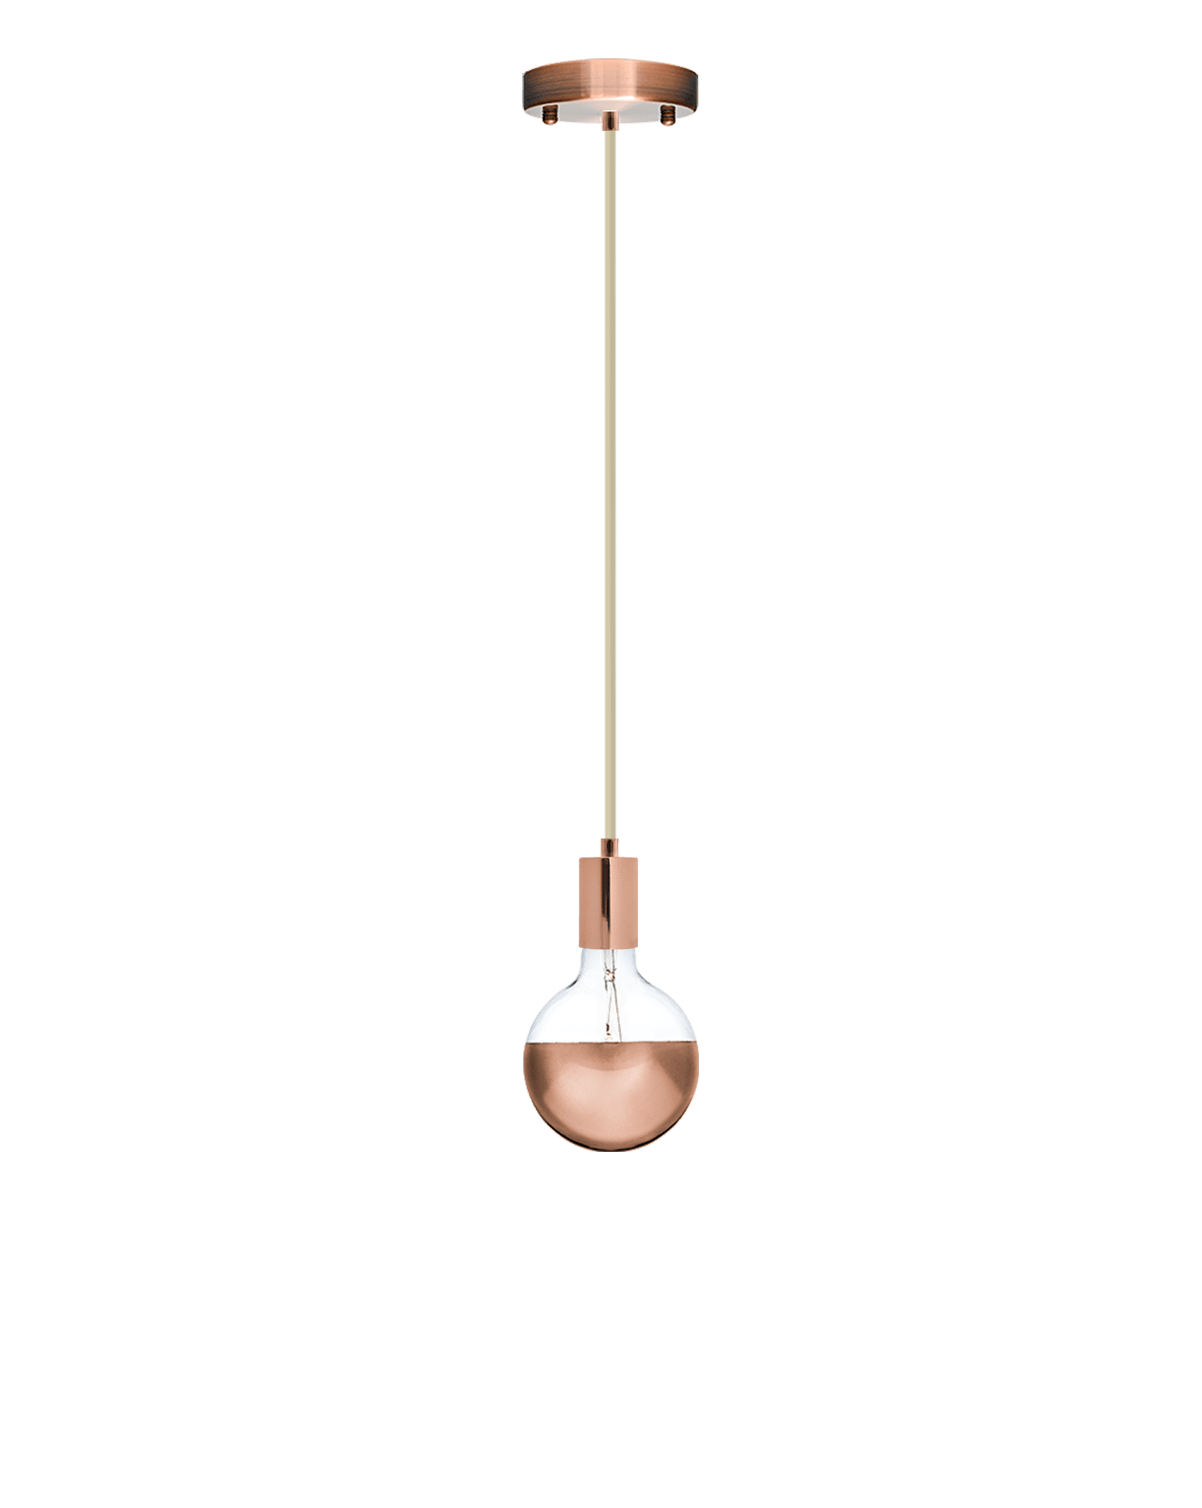 Single Pendant: Champagne and Copper Dipped Hangout Lighting